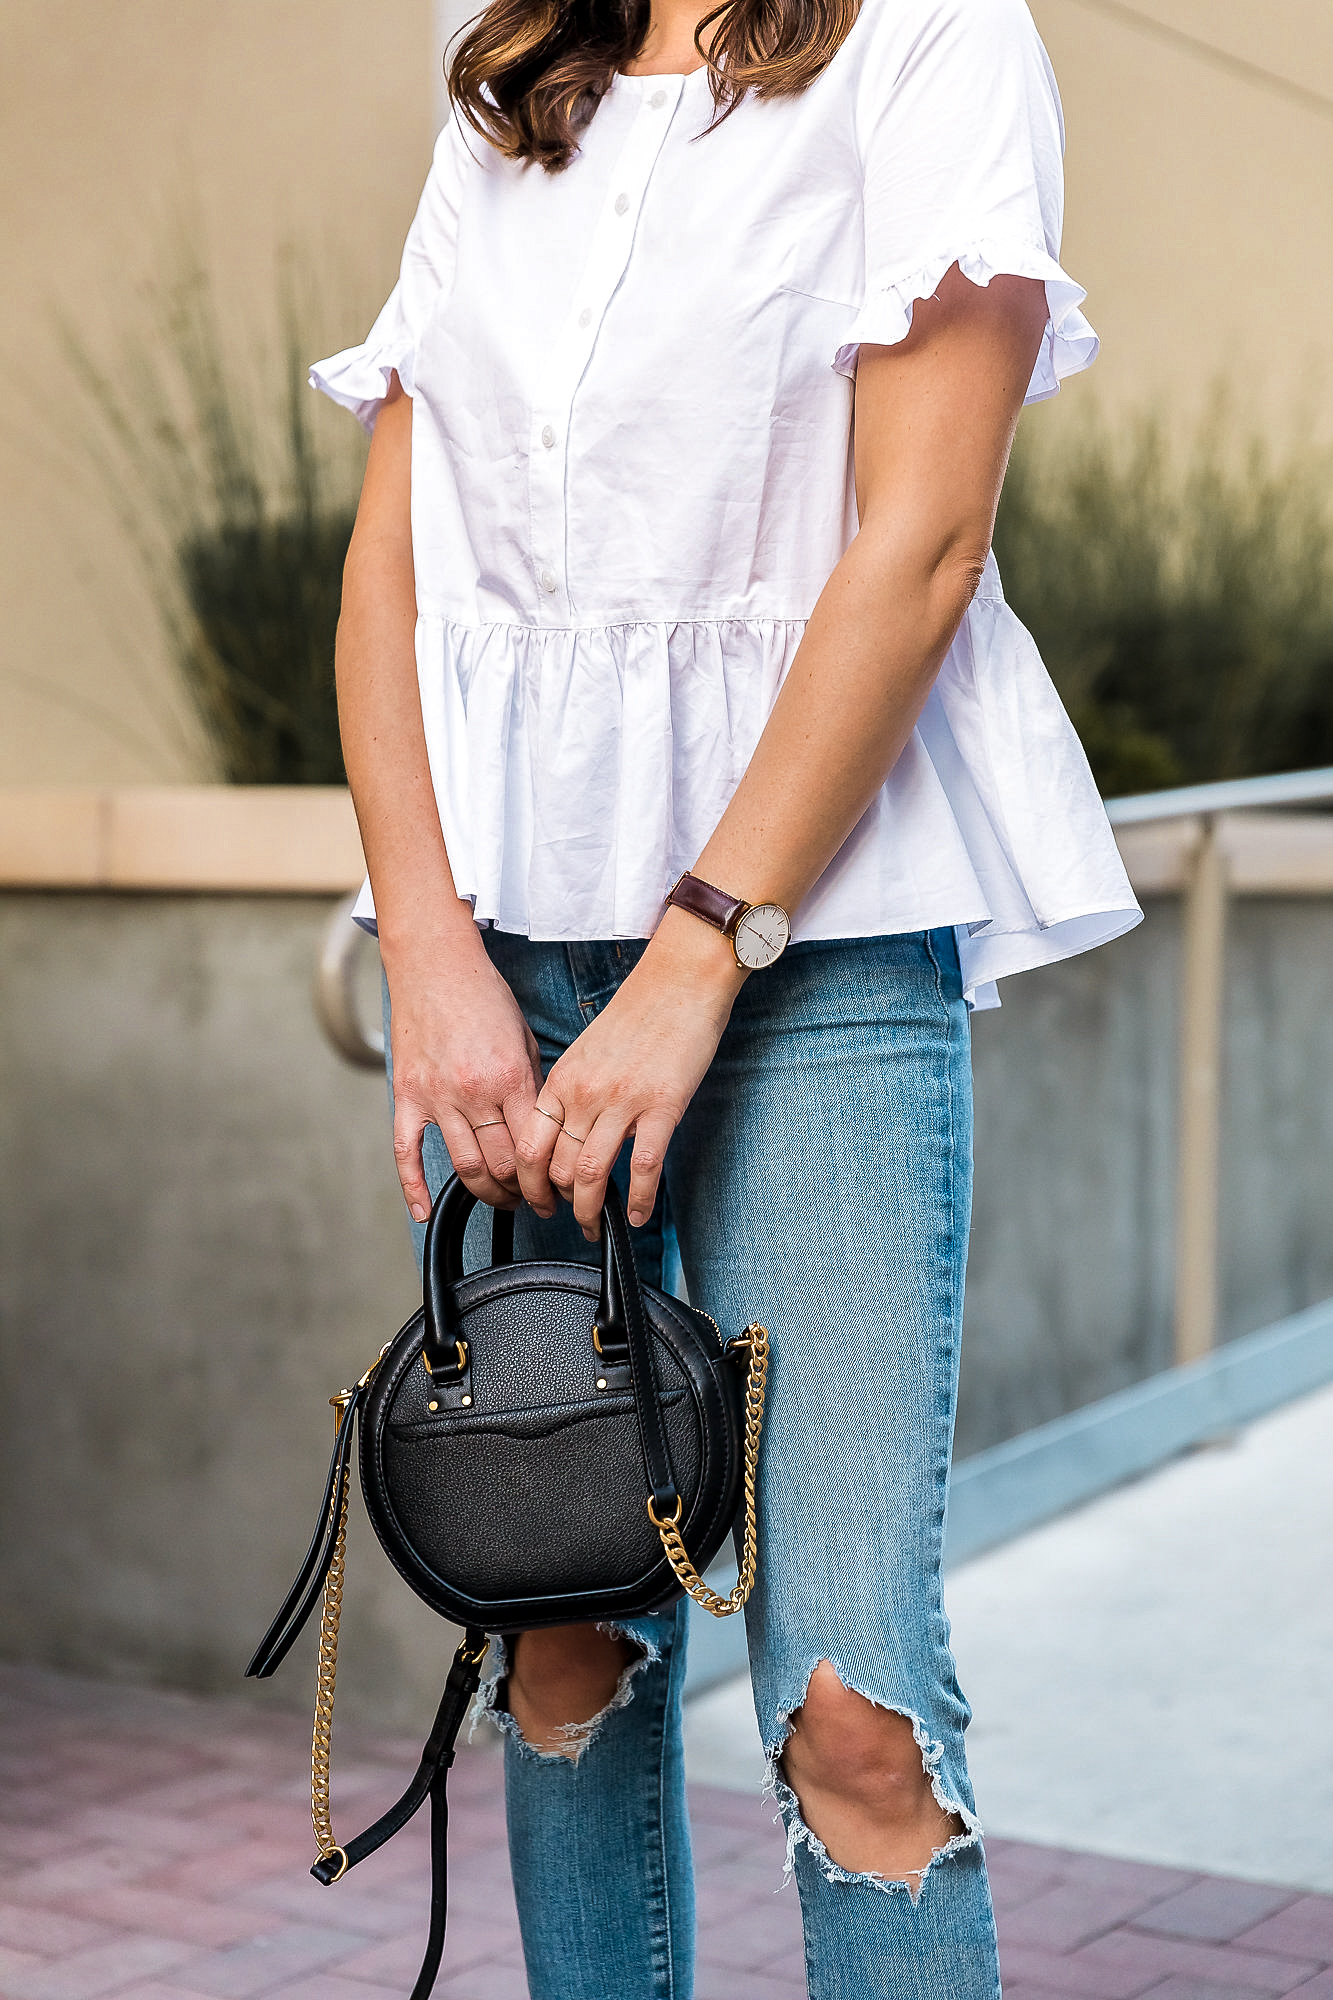 white top, jeans and black bag outfit